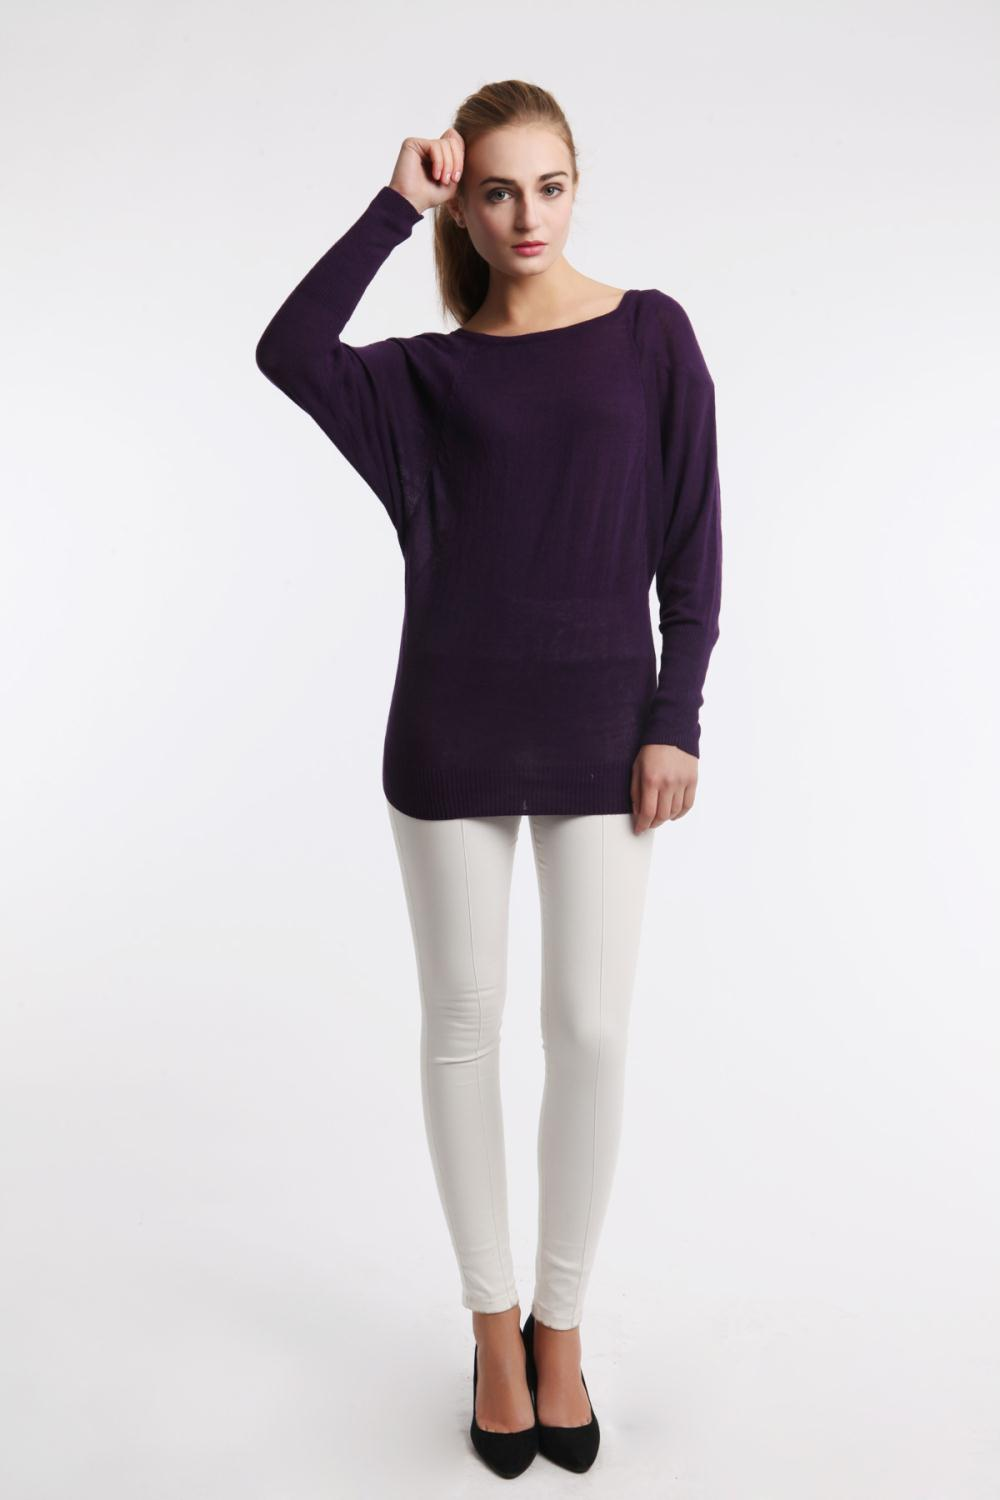 5spring sweaters for Women Elegant Batwing Lace Hollow ... - photo#30